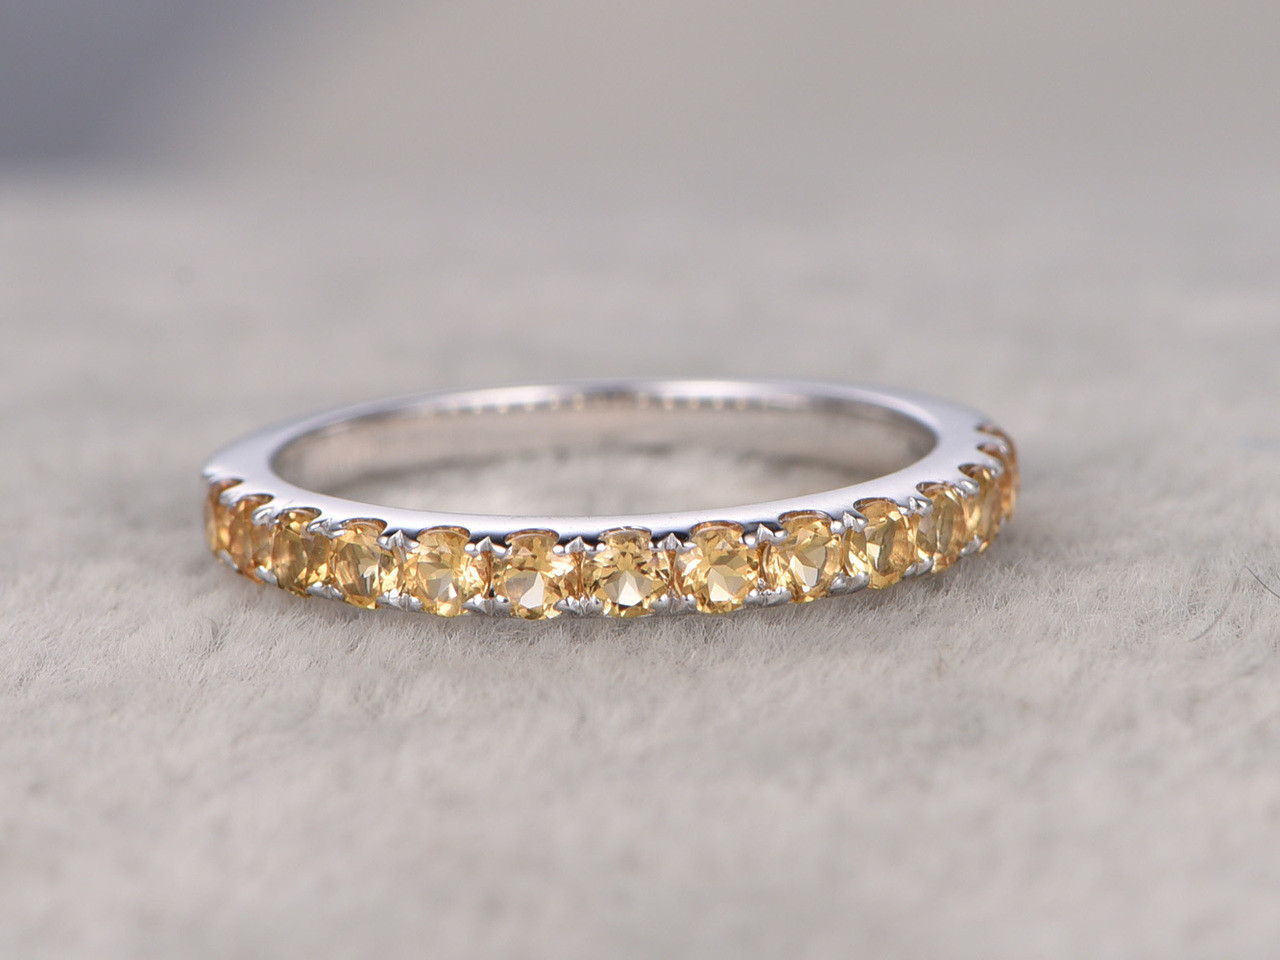 in jewelry diamond rope wedding round set fascinating eternity pave nl design gold with white wg bands band